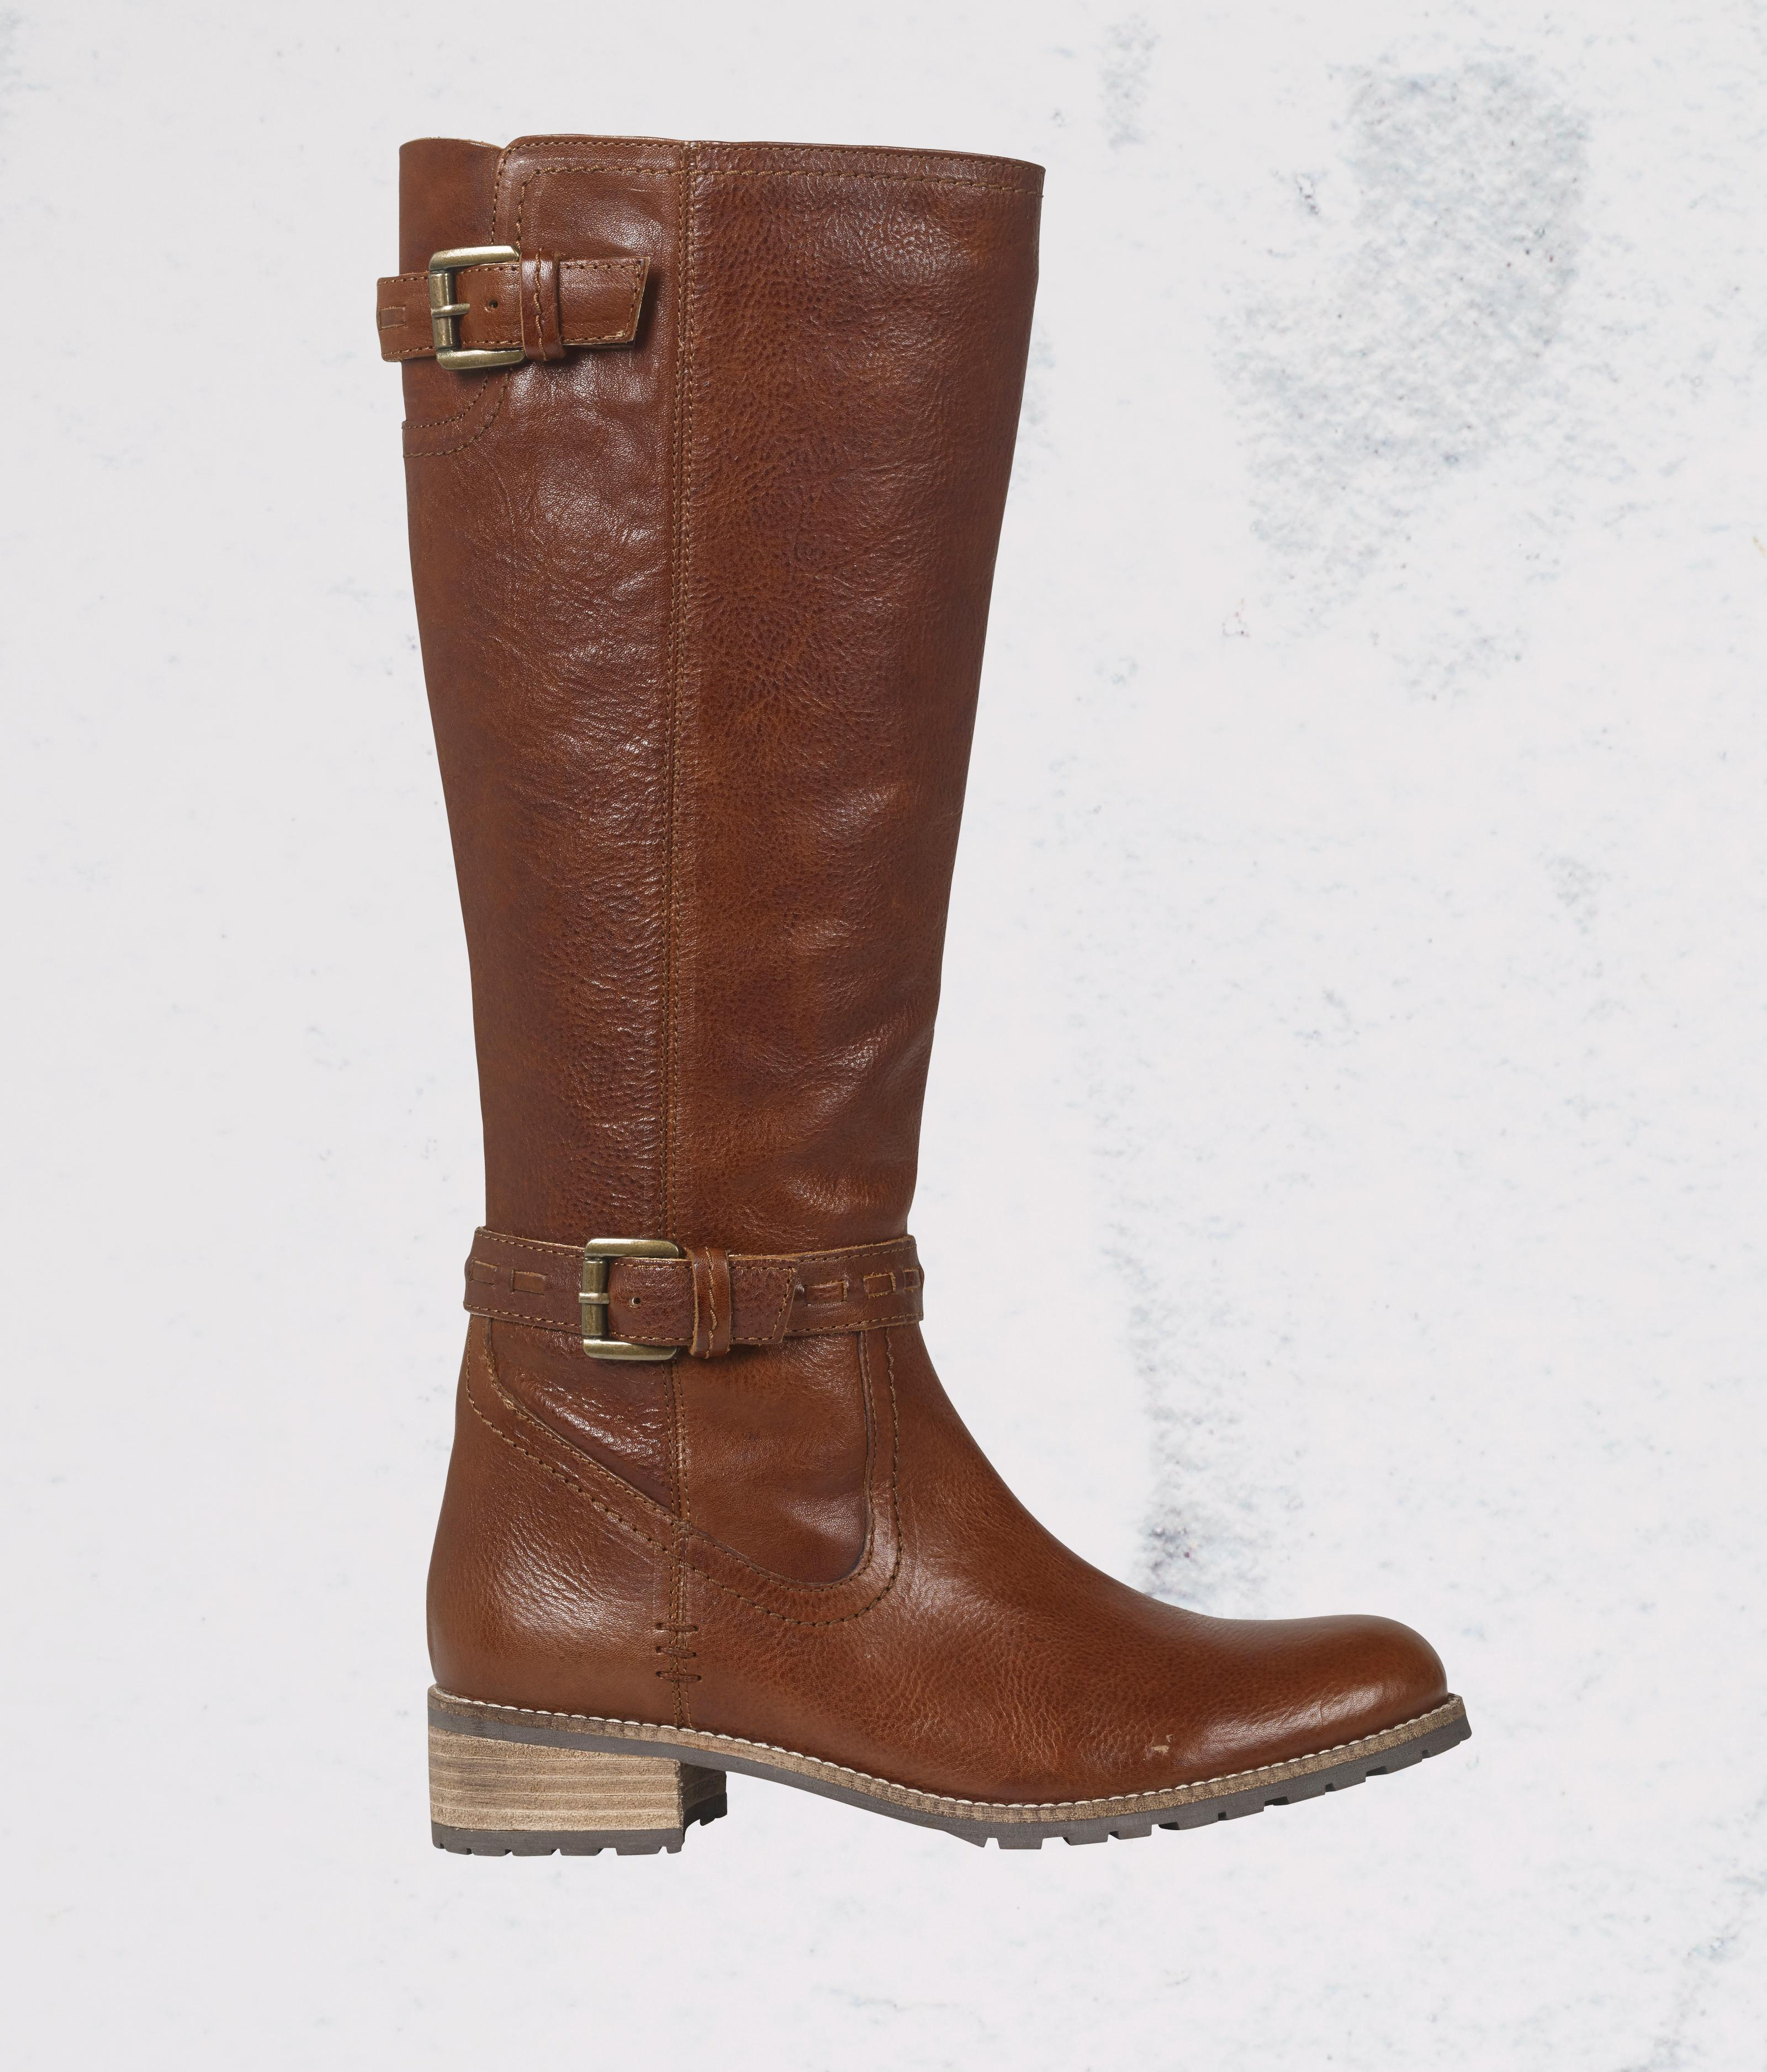 Super comfy, stylish Newham Chelsea Ankle Boots in Tan from FatFace.